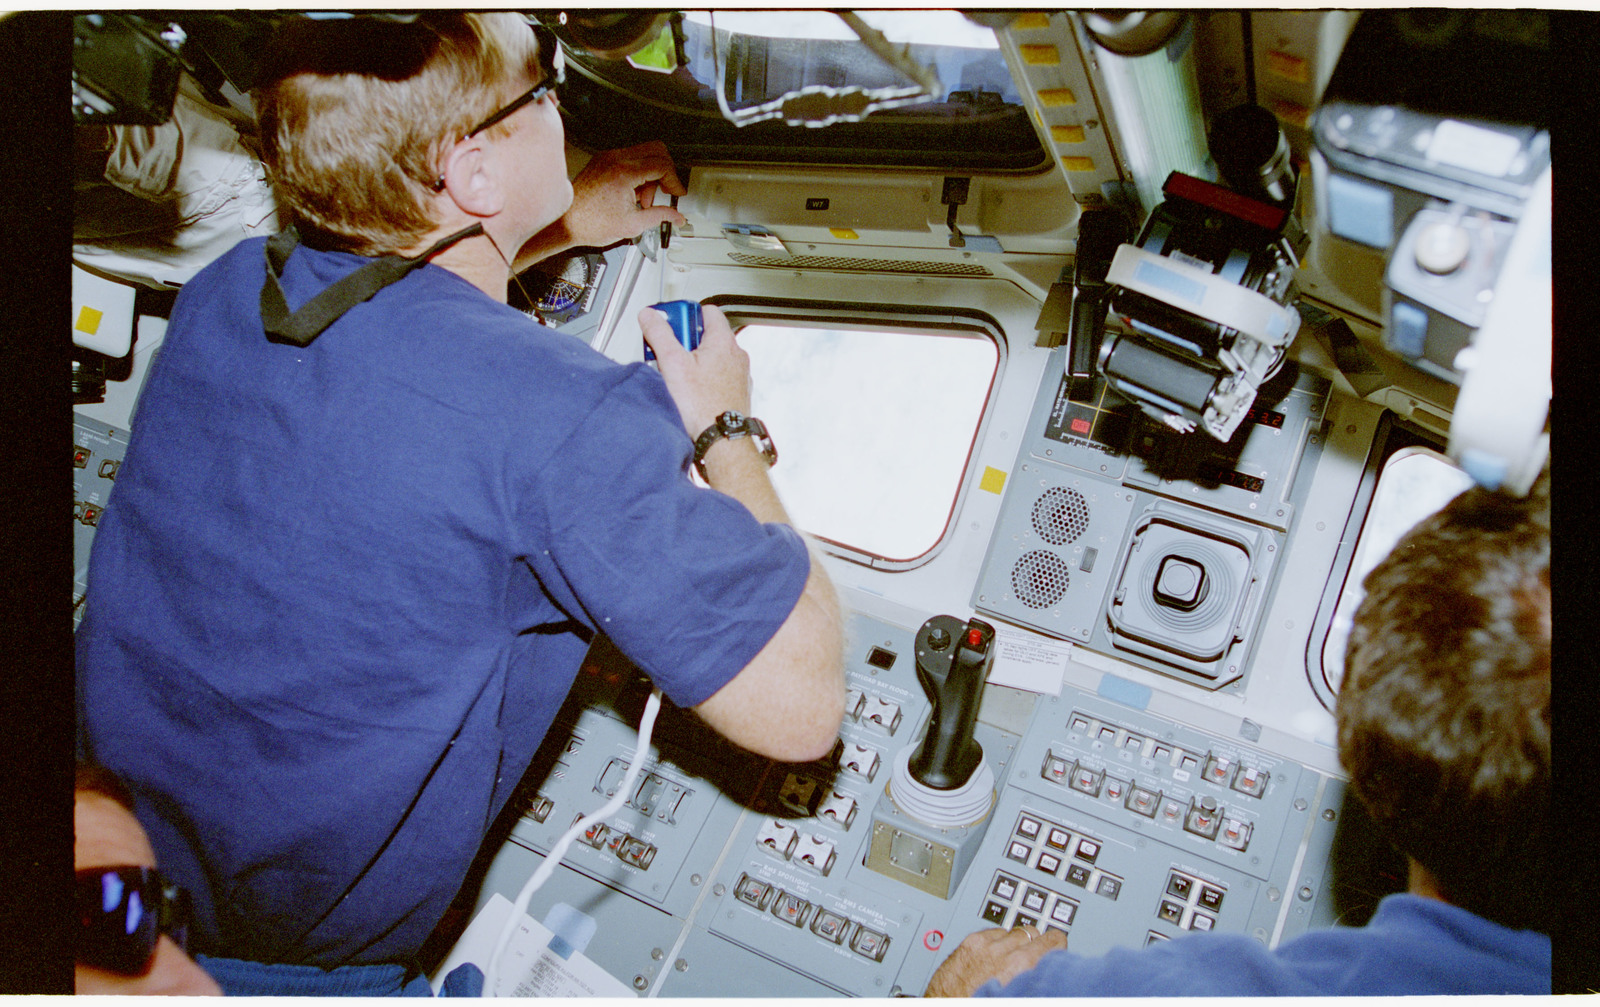 STS069-377-001 - STS-069 - STS-69 crewmembers on aft flight deck during Wake Shield deployment